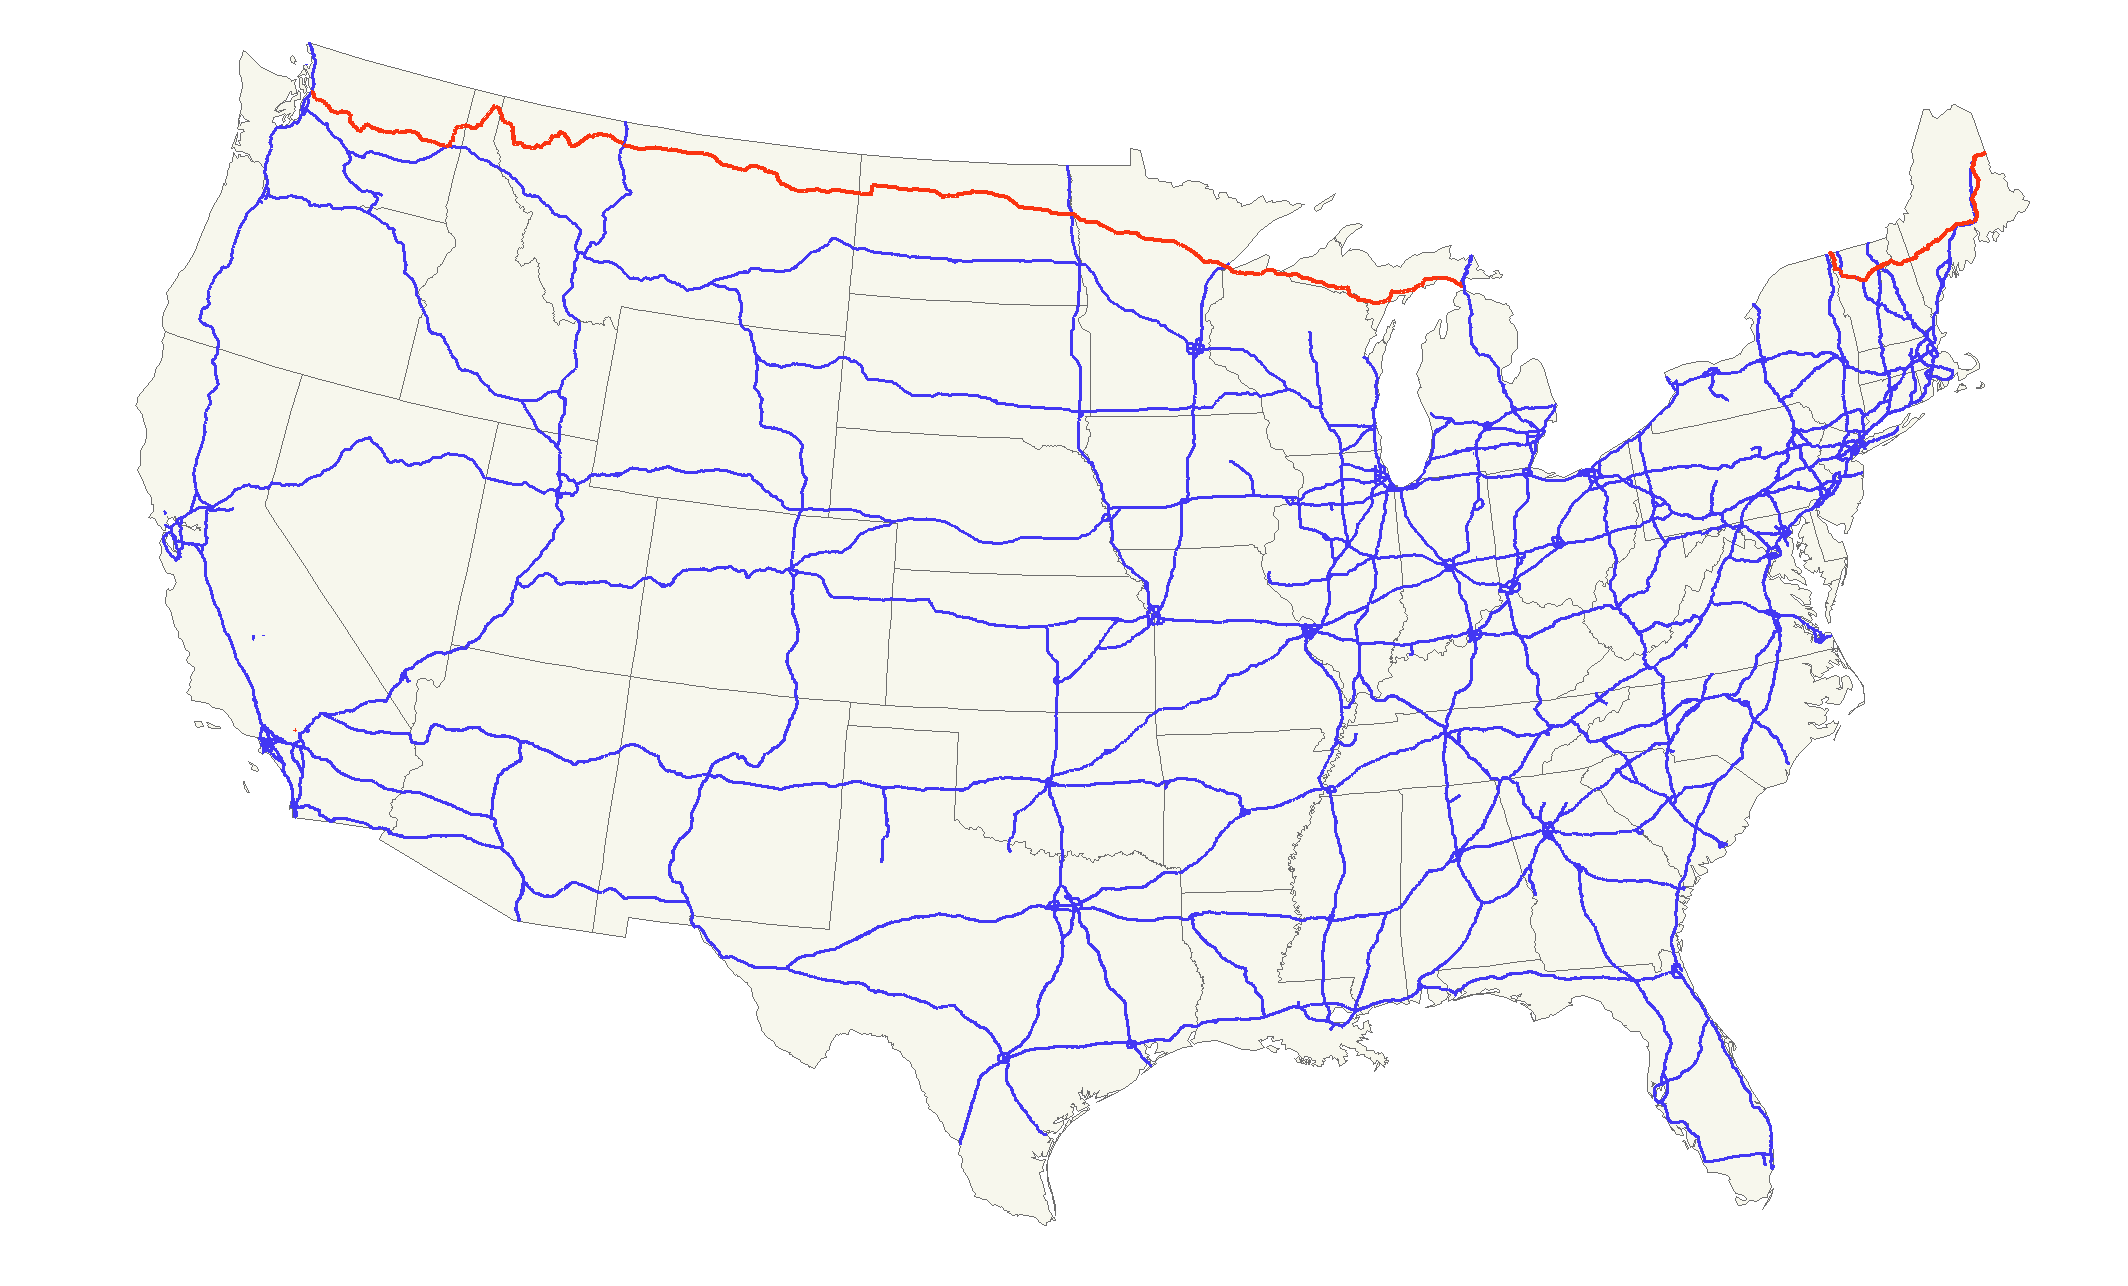 Us Route 2 Map U.S. Route 2   Simple English Wikipedia, the free encyclopedia